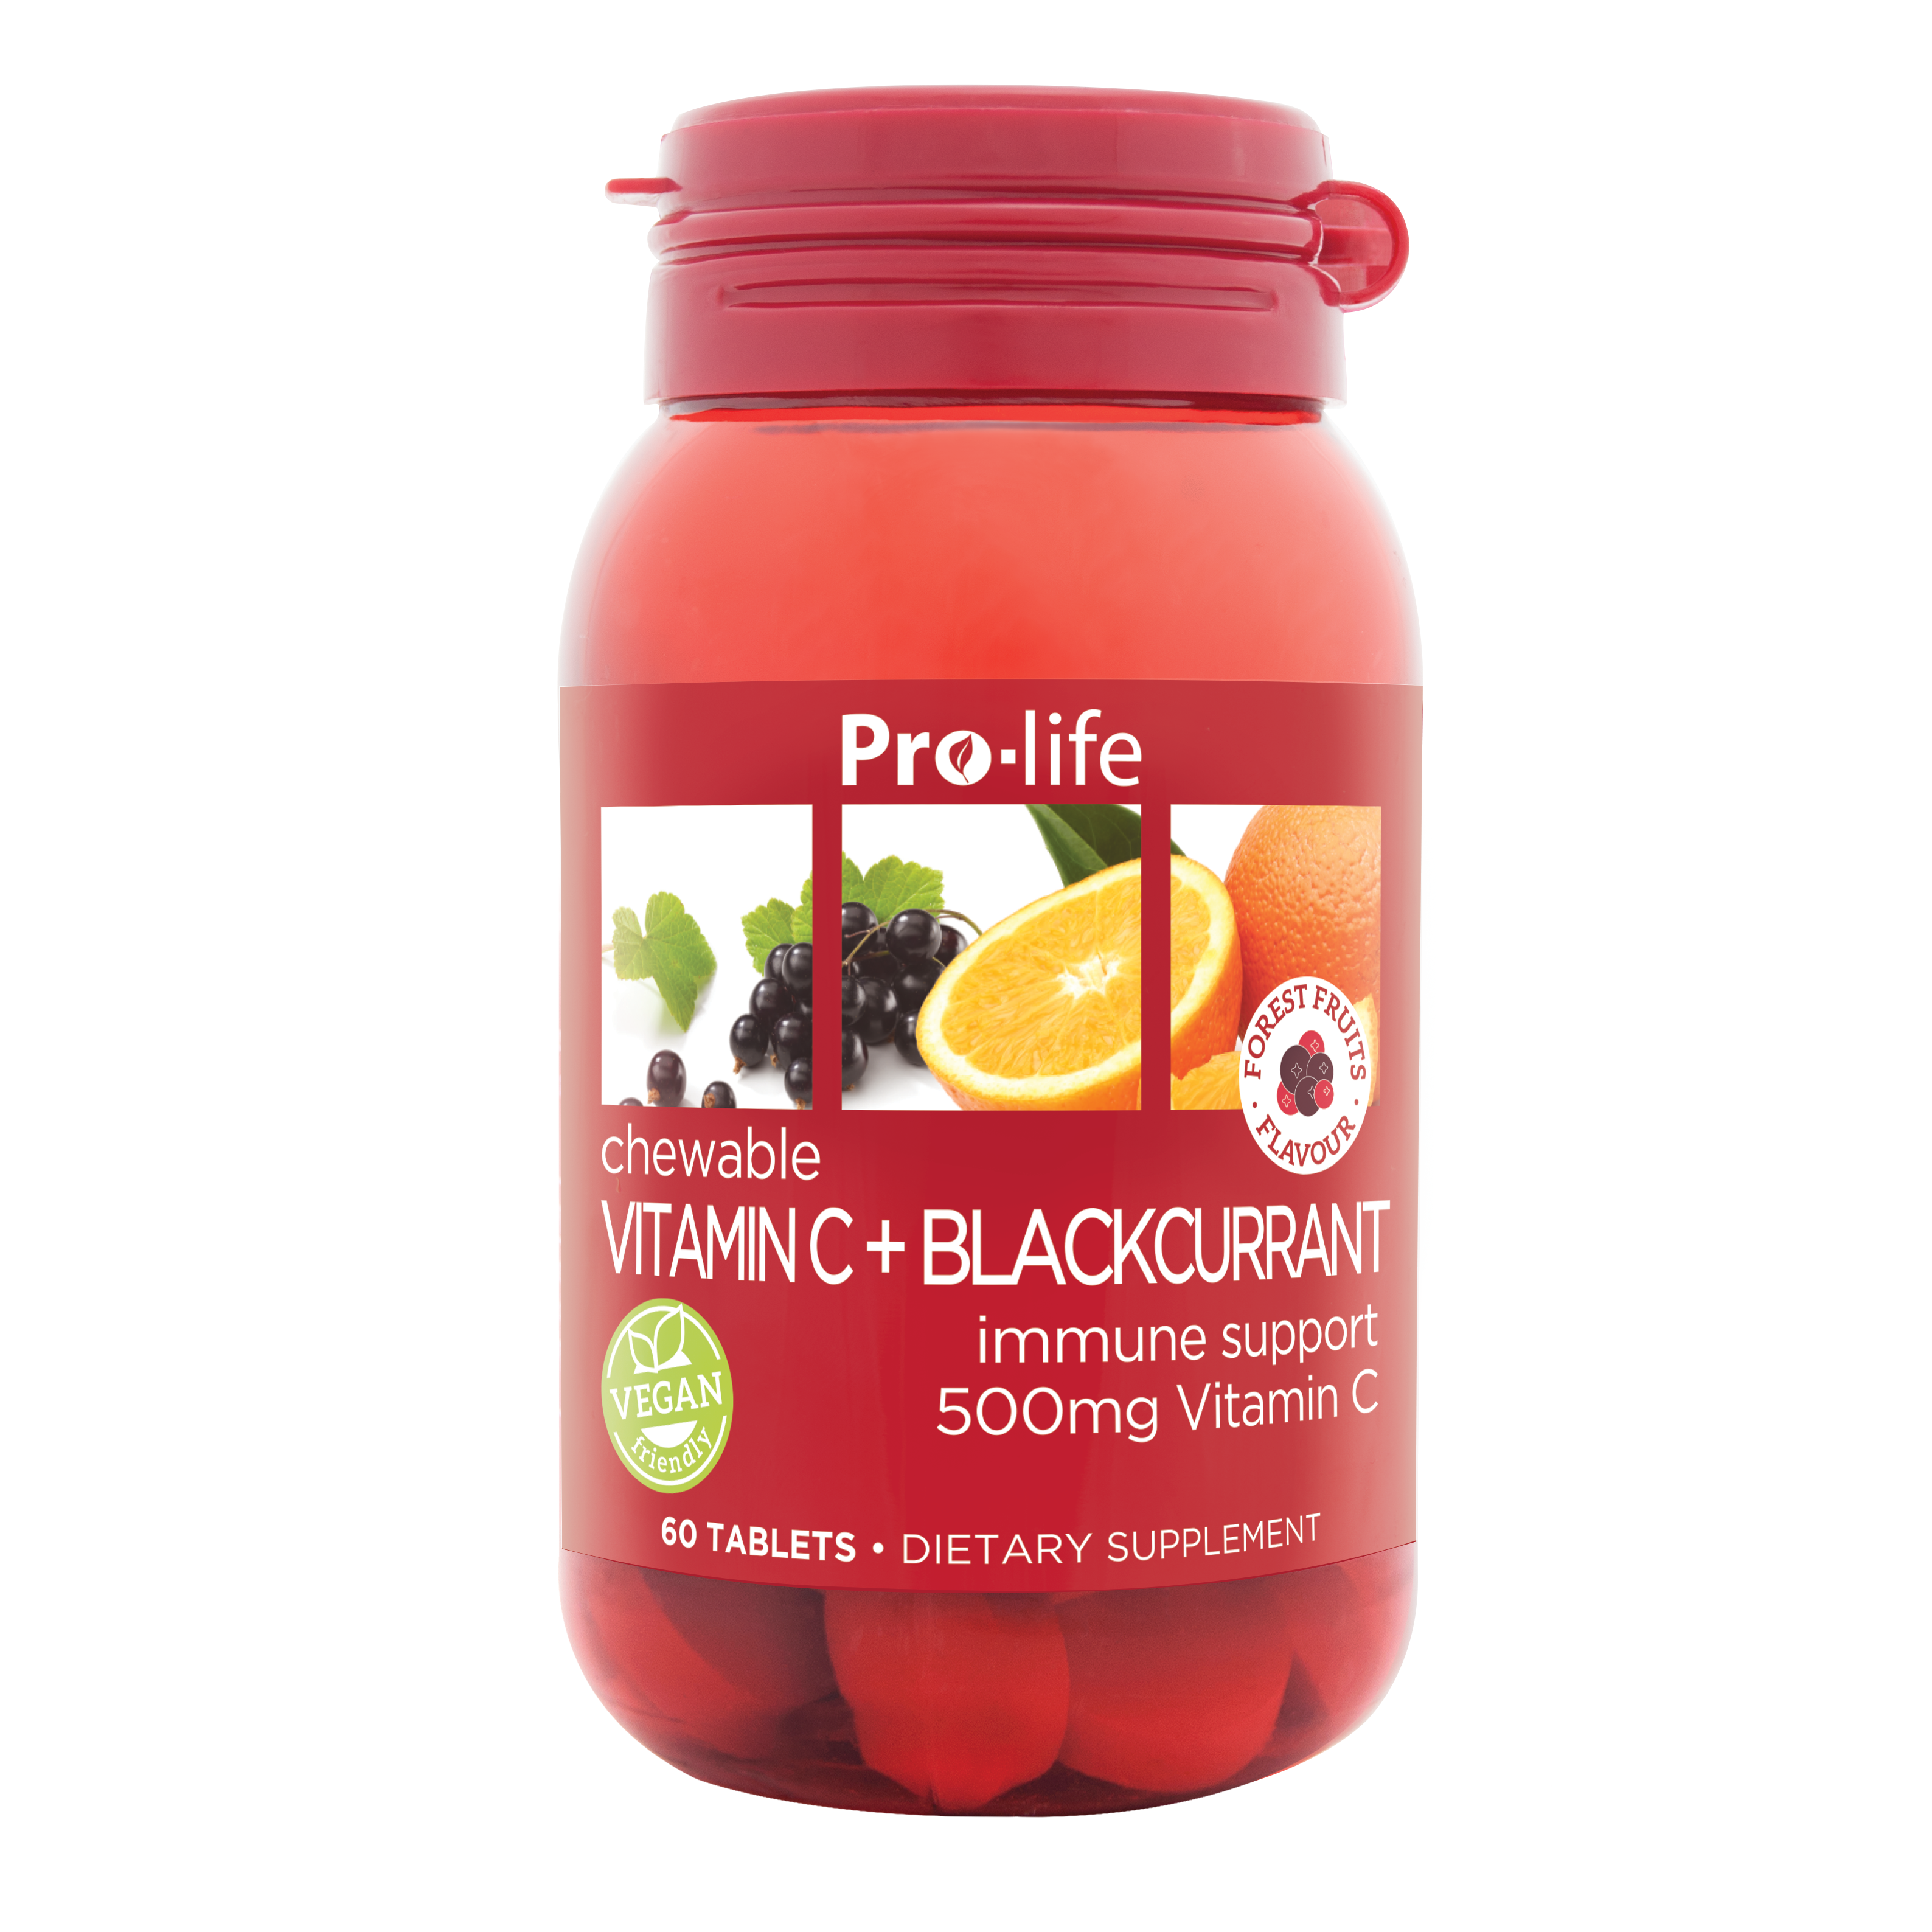 Pro-life Vitamin C + Blackcurrant Chewable | Support Immunity, Circulation and Heart Health with Forest Fruit Flavour